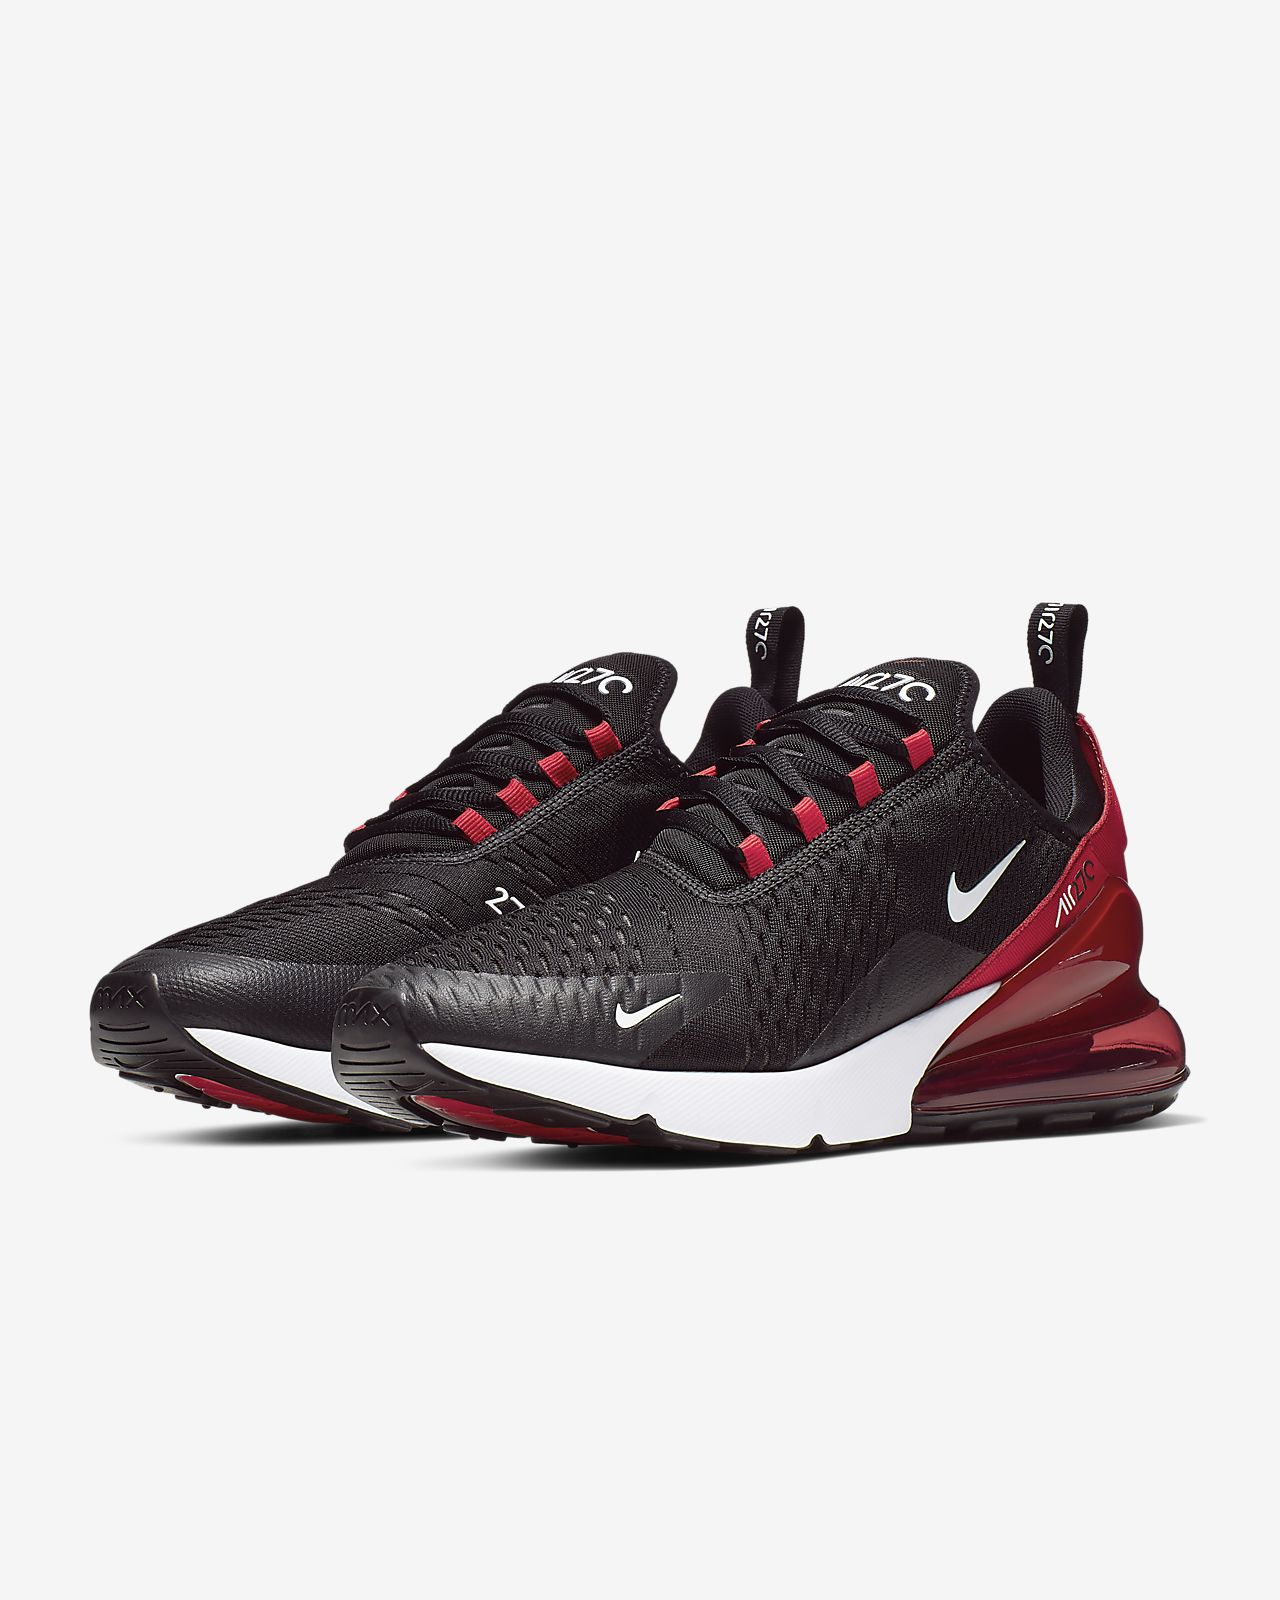 a2e2730f35ac Nike Air Max 270 Men s Shoe. Nike.com GB